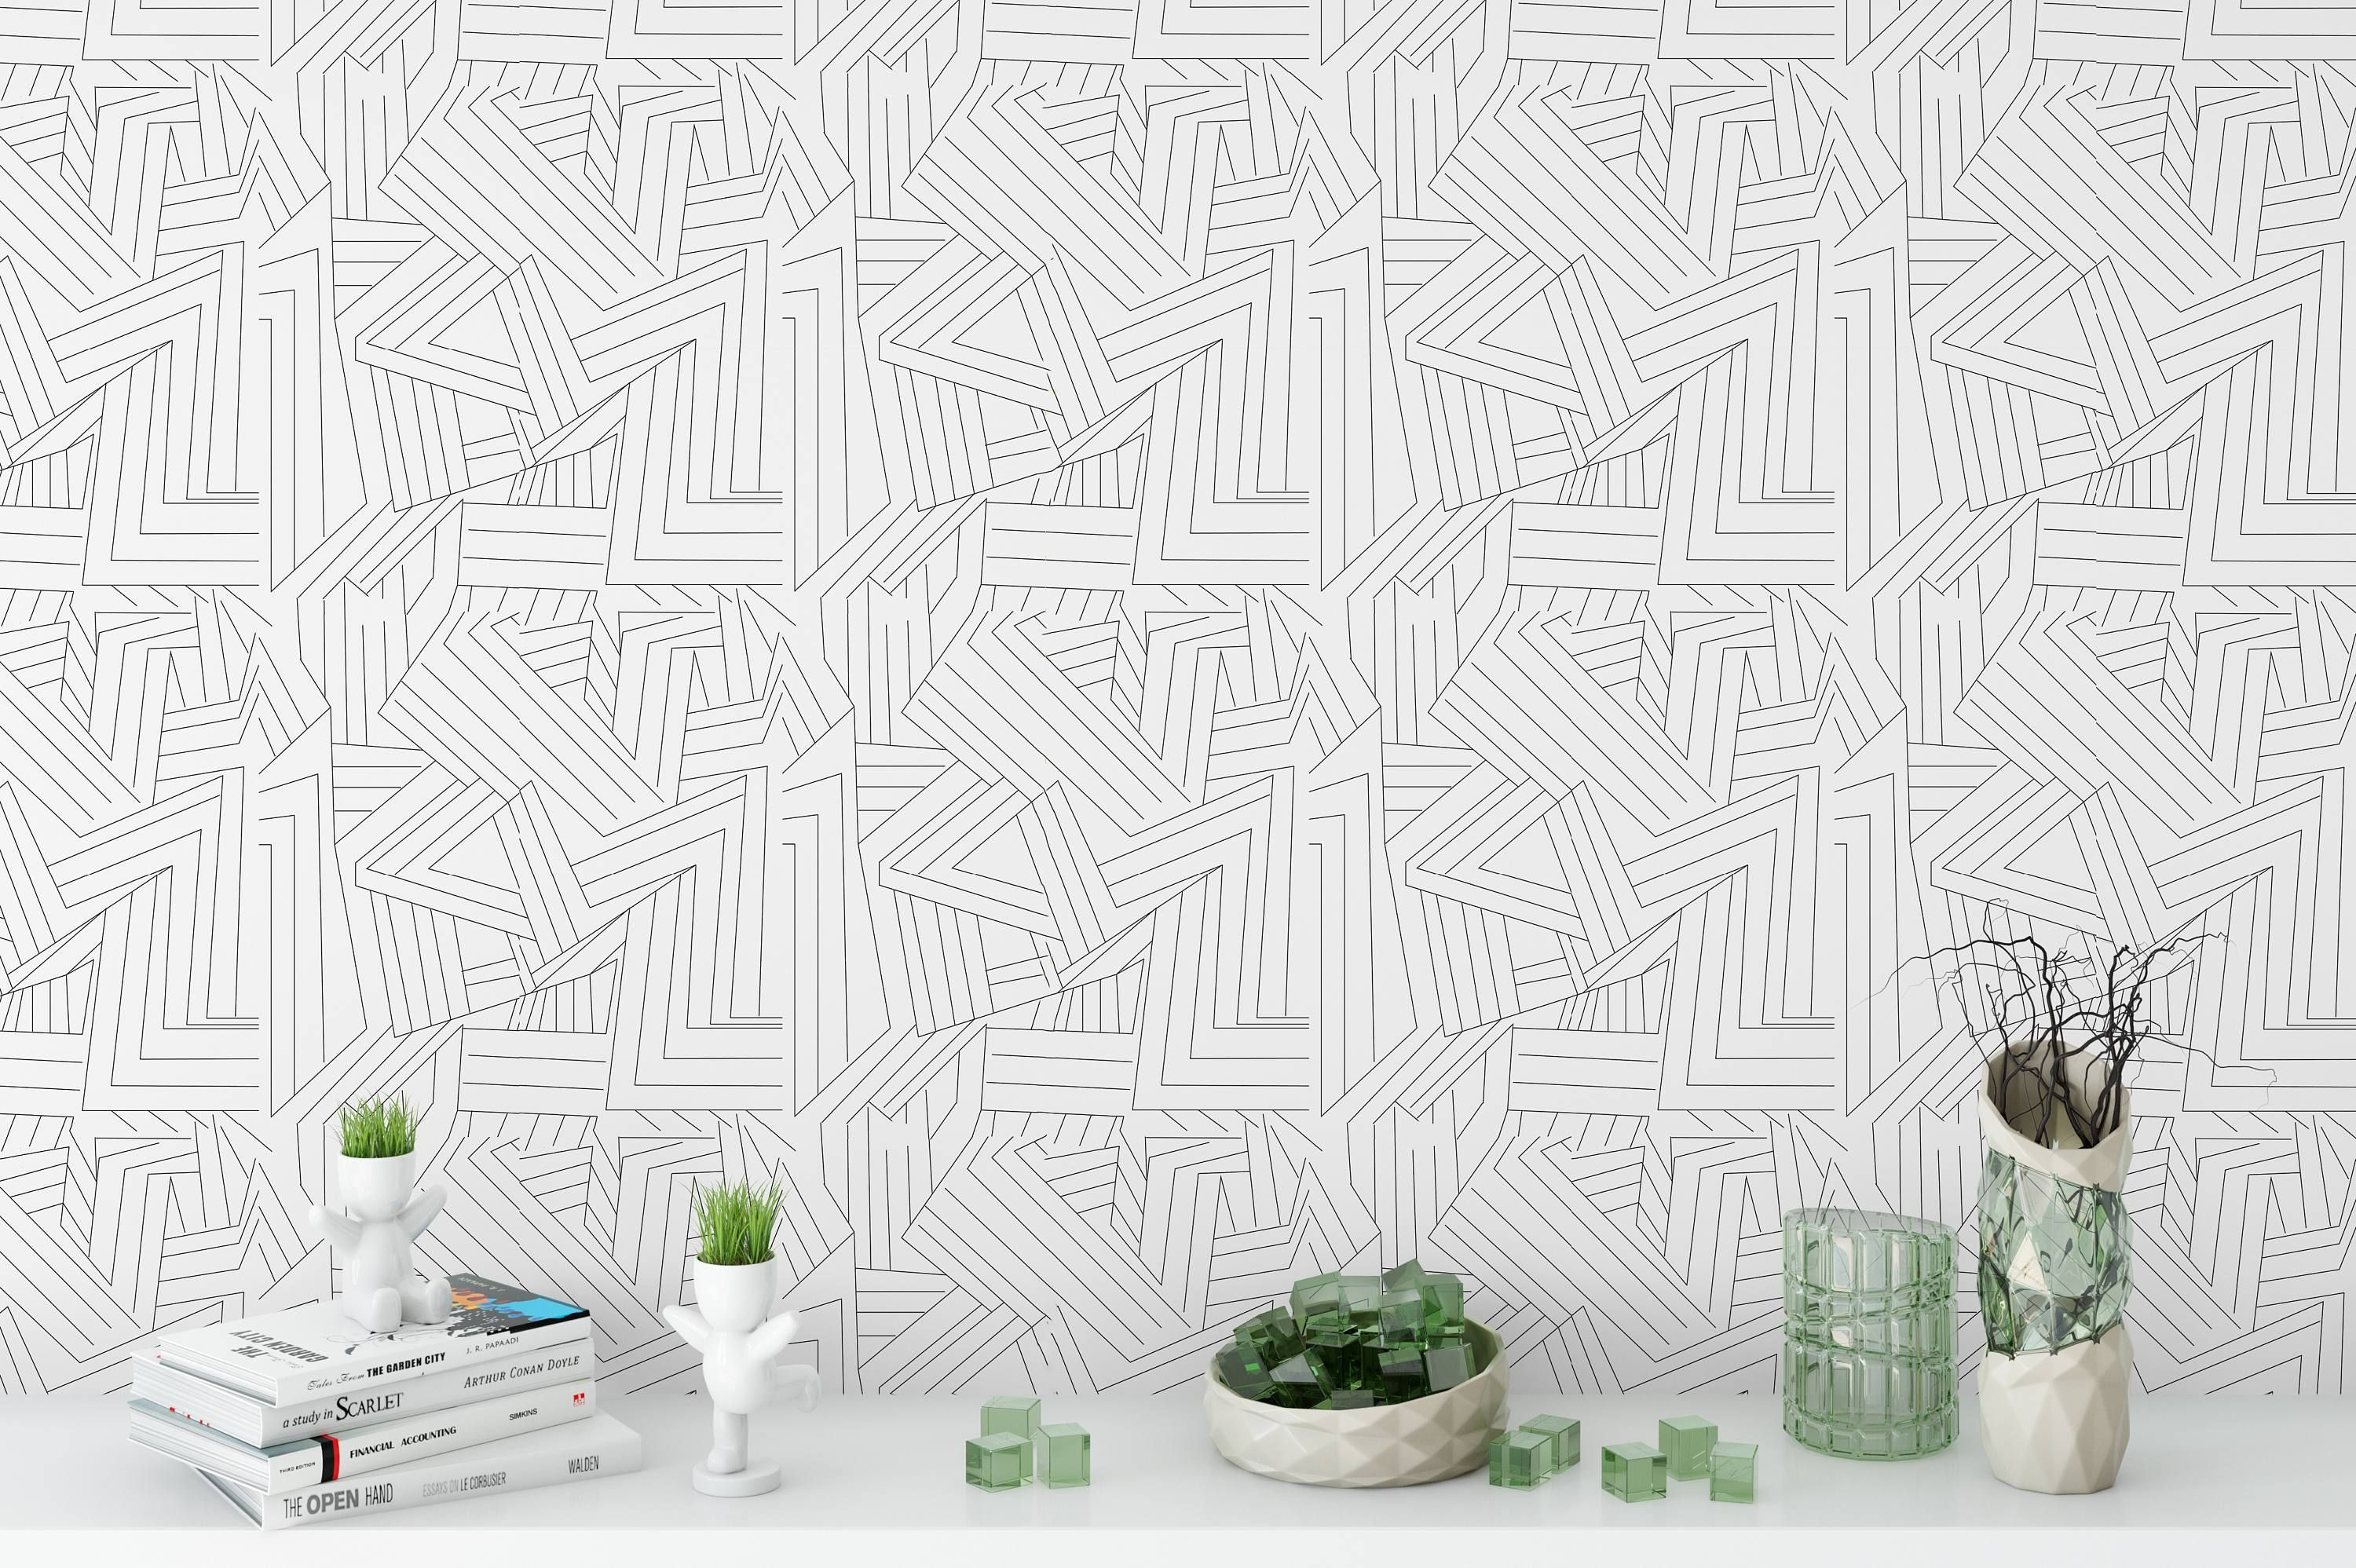 Removable Wallpaper Black White Lines Peel Stick Wallpaper Self Adhesive Temporary Decal Linear S Boho Wallpaper Peel And Stick Wallpaper Removable Wallpaper